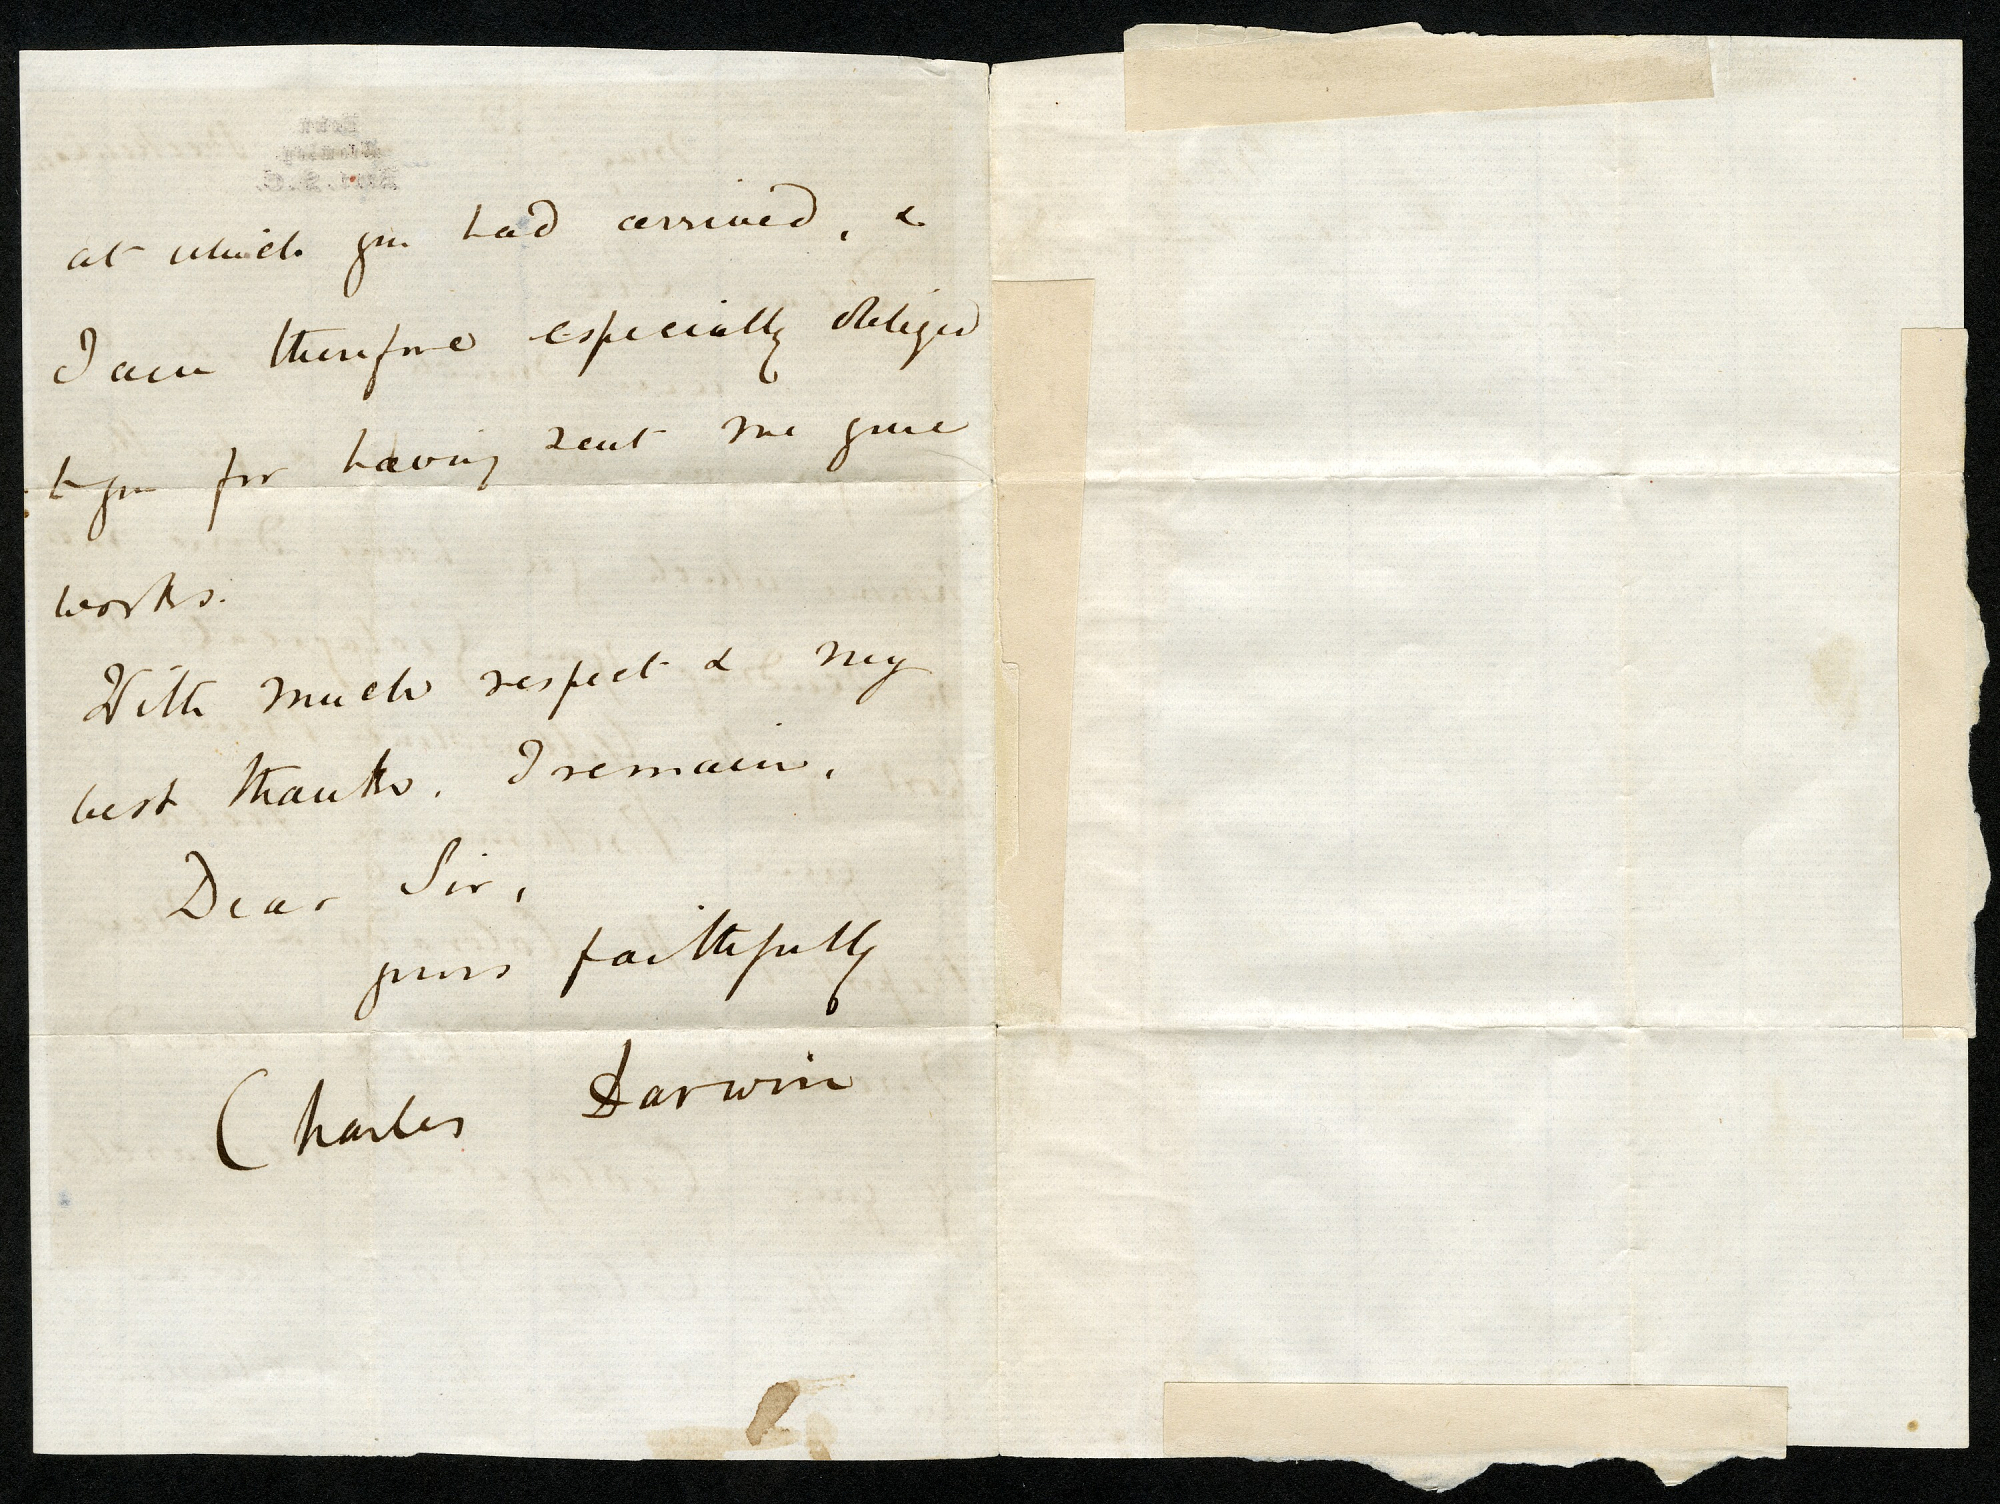 The second page of the letter signed by Charles Darwin.